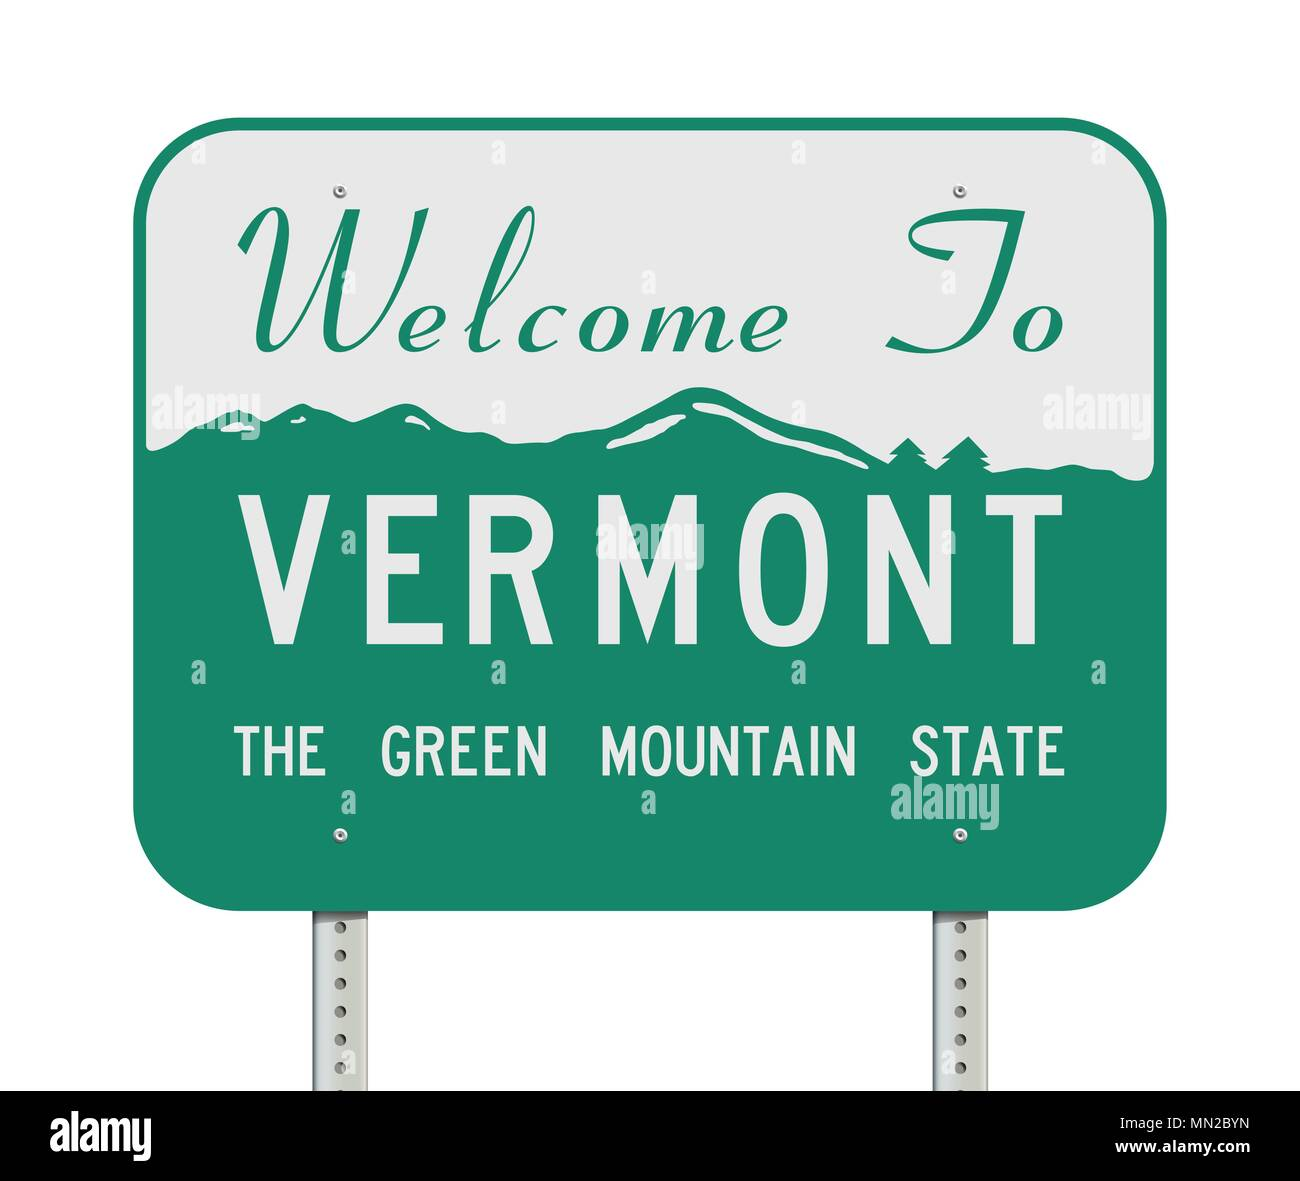 Vector illustration of the Welcome to Vermont 'the green mountain state' road sign - Stock Vector